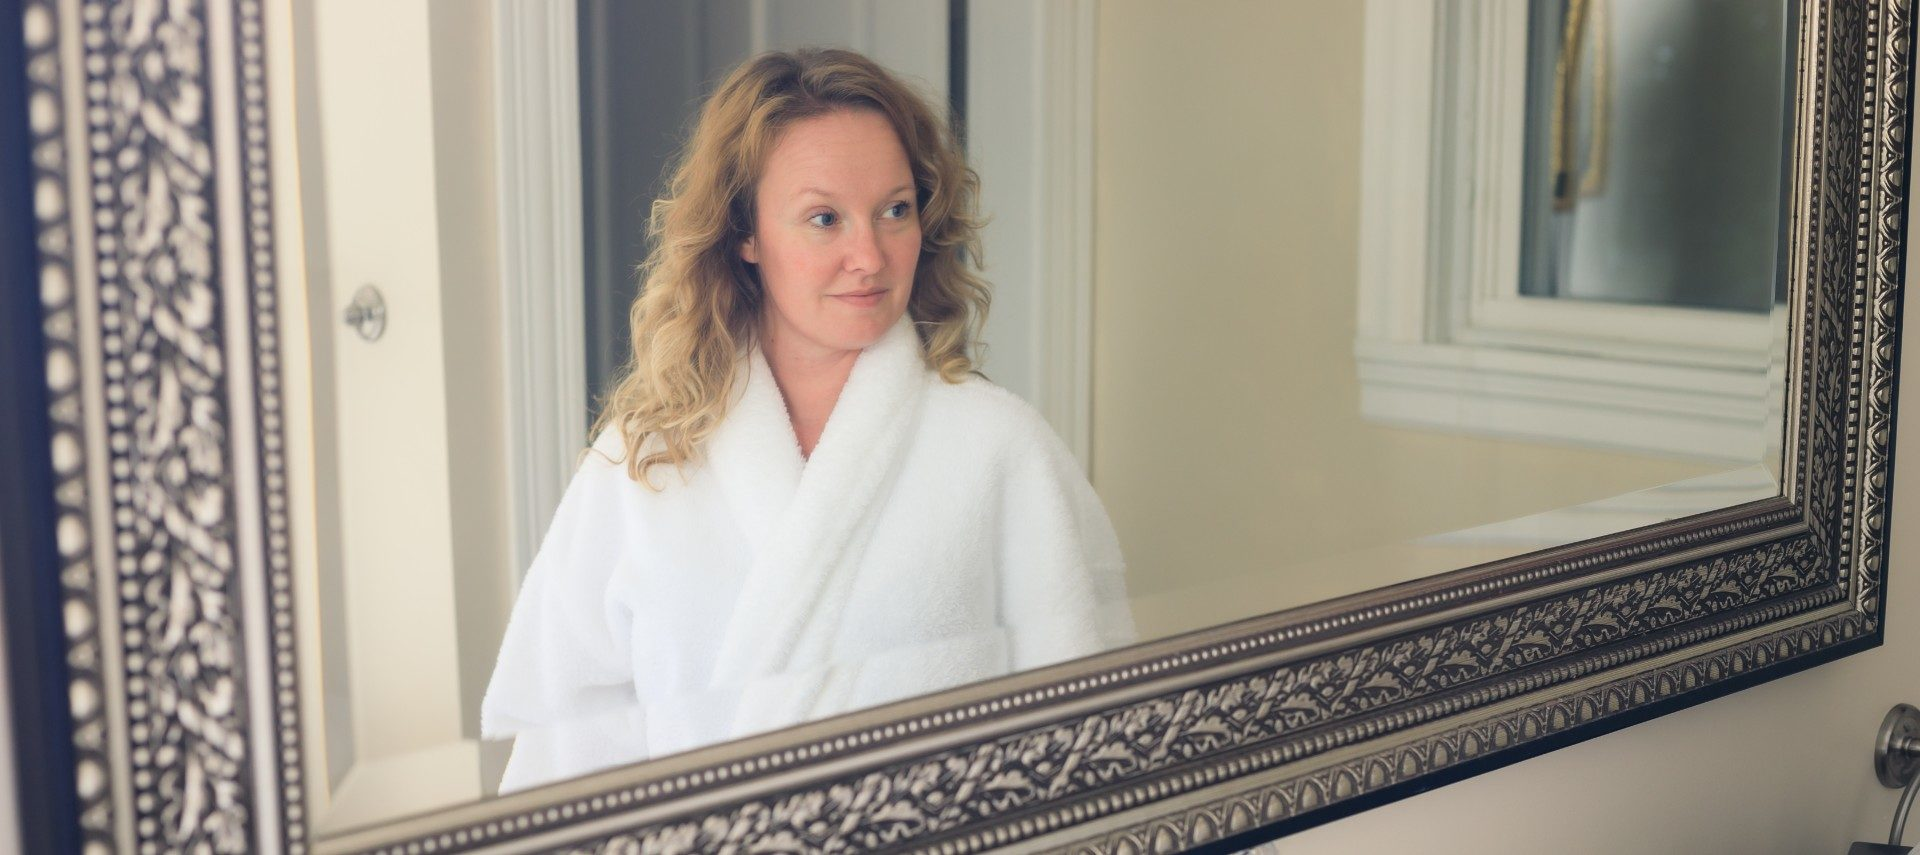 beautiful blond woman in white robe reflection in framed mirror